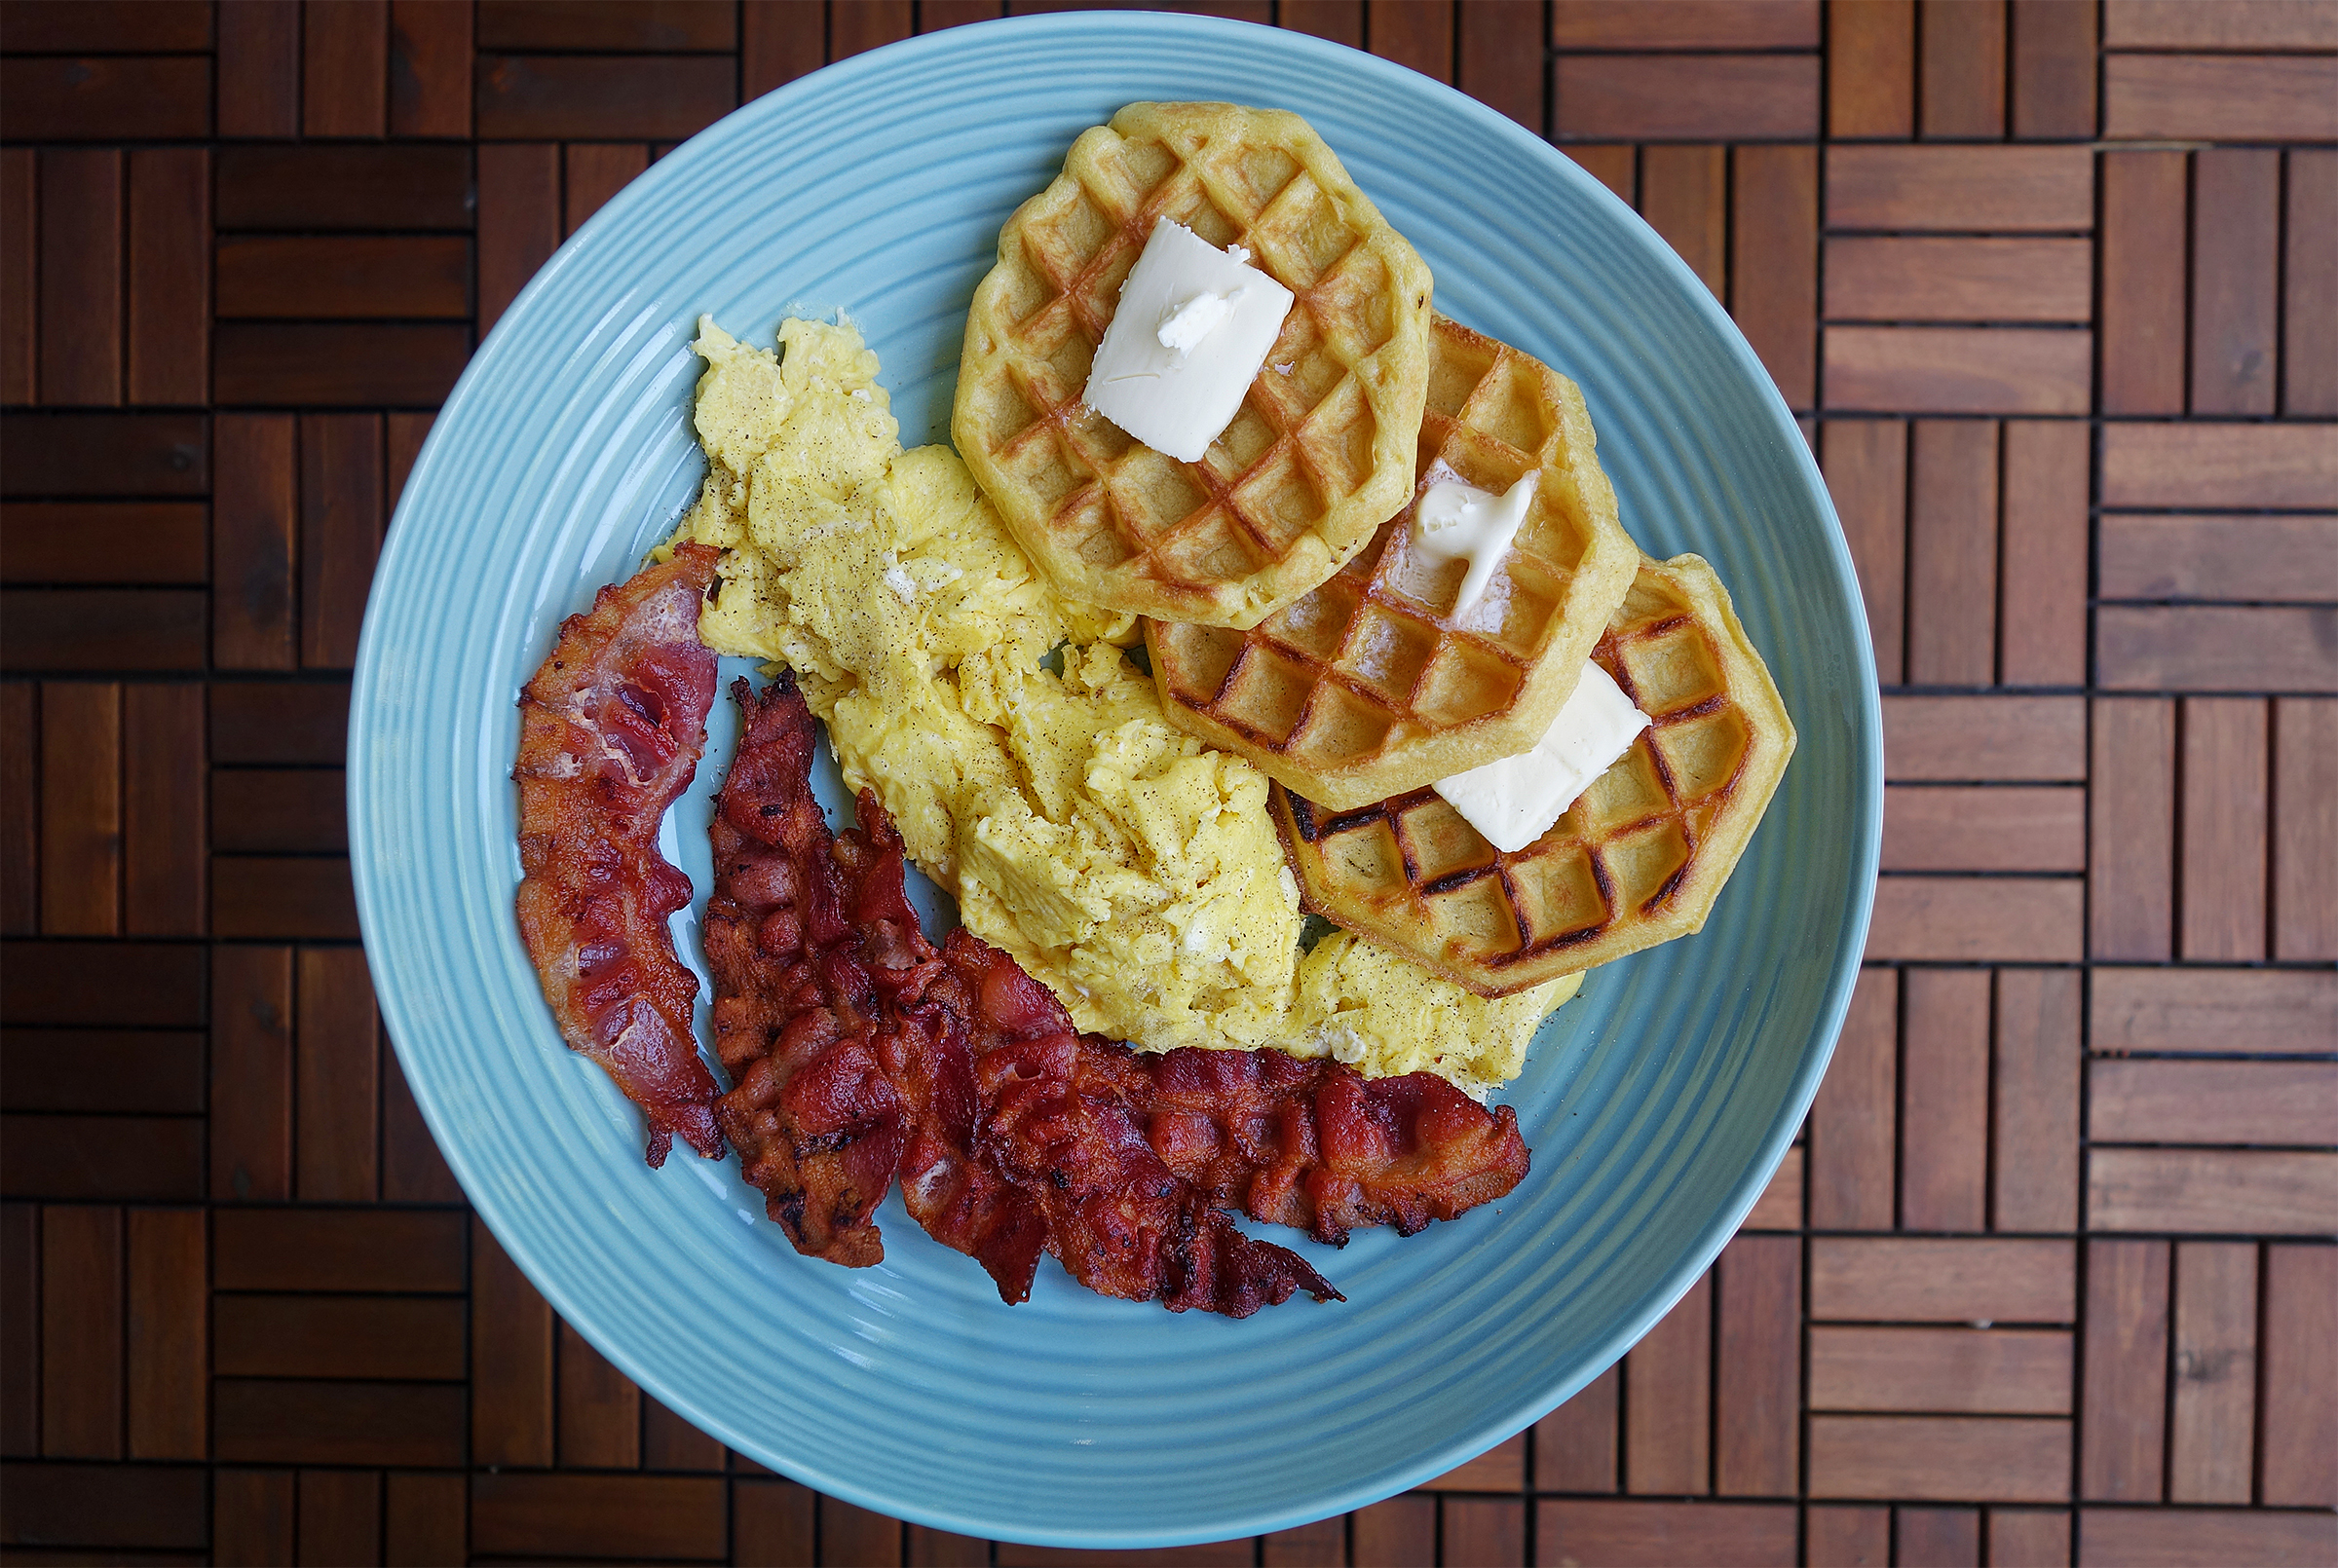 BEW - Bacon Eggs and Waffles